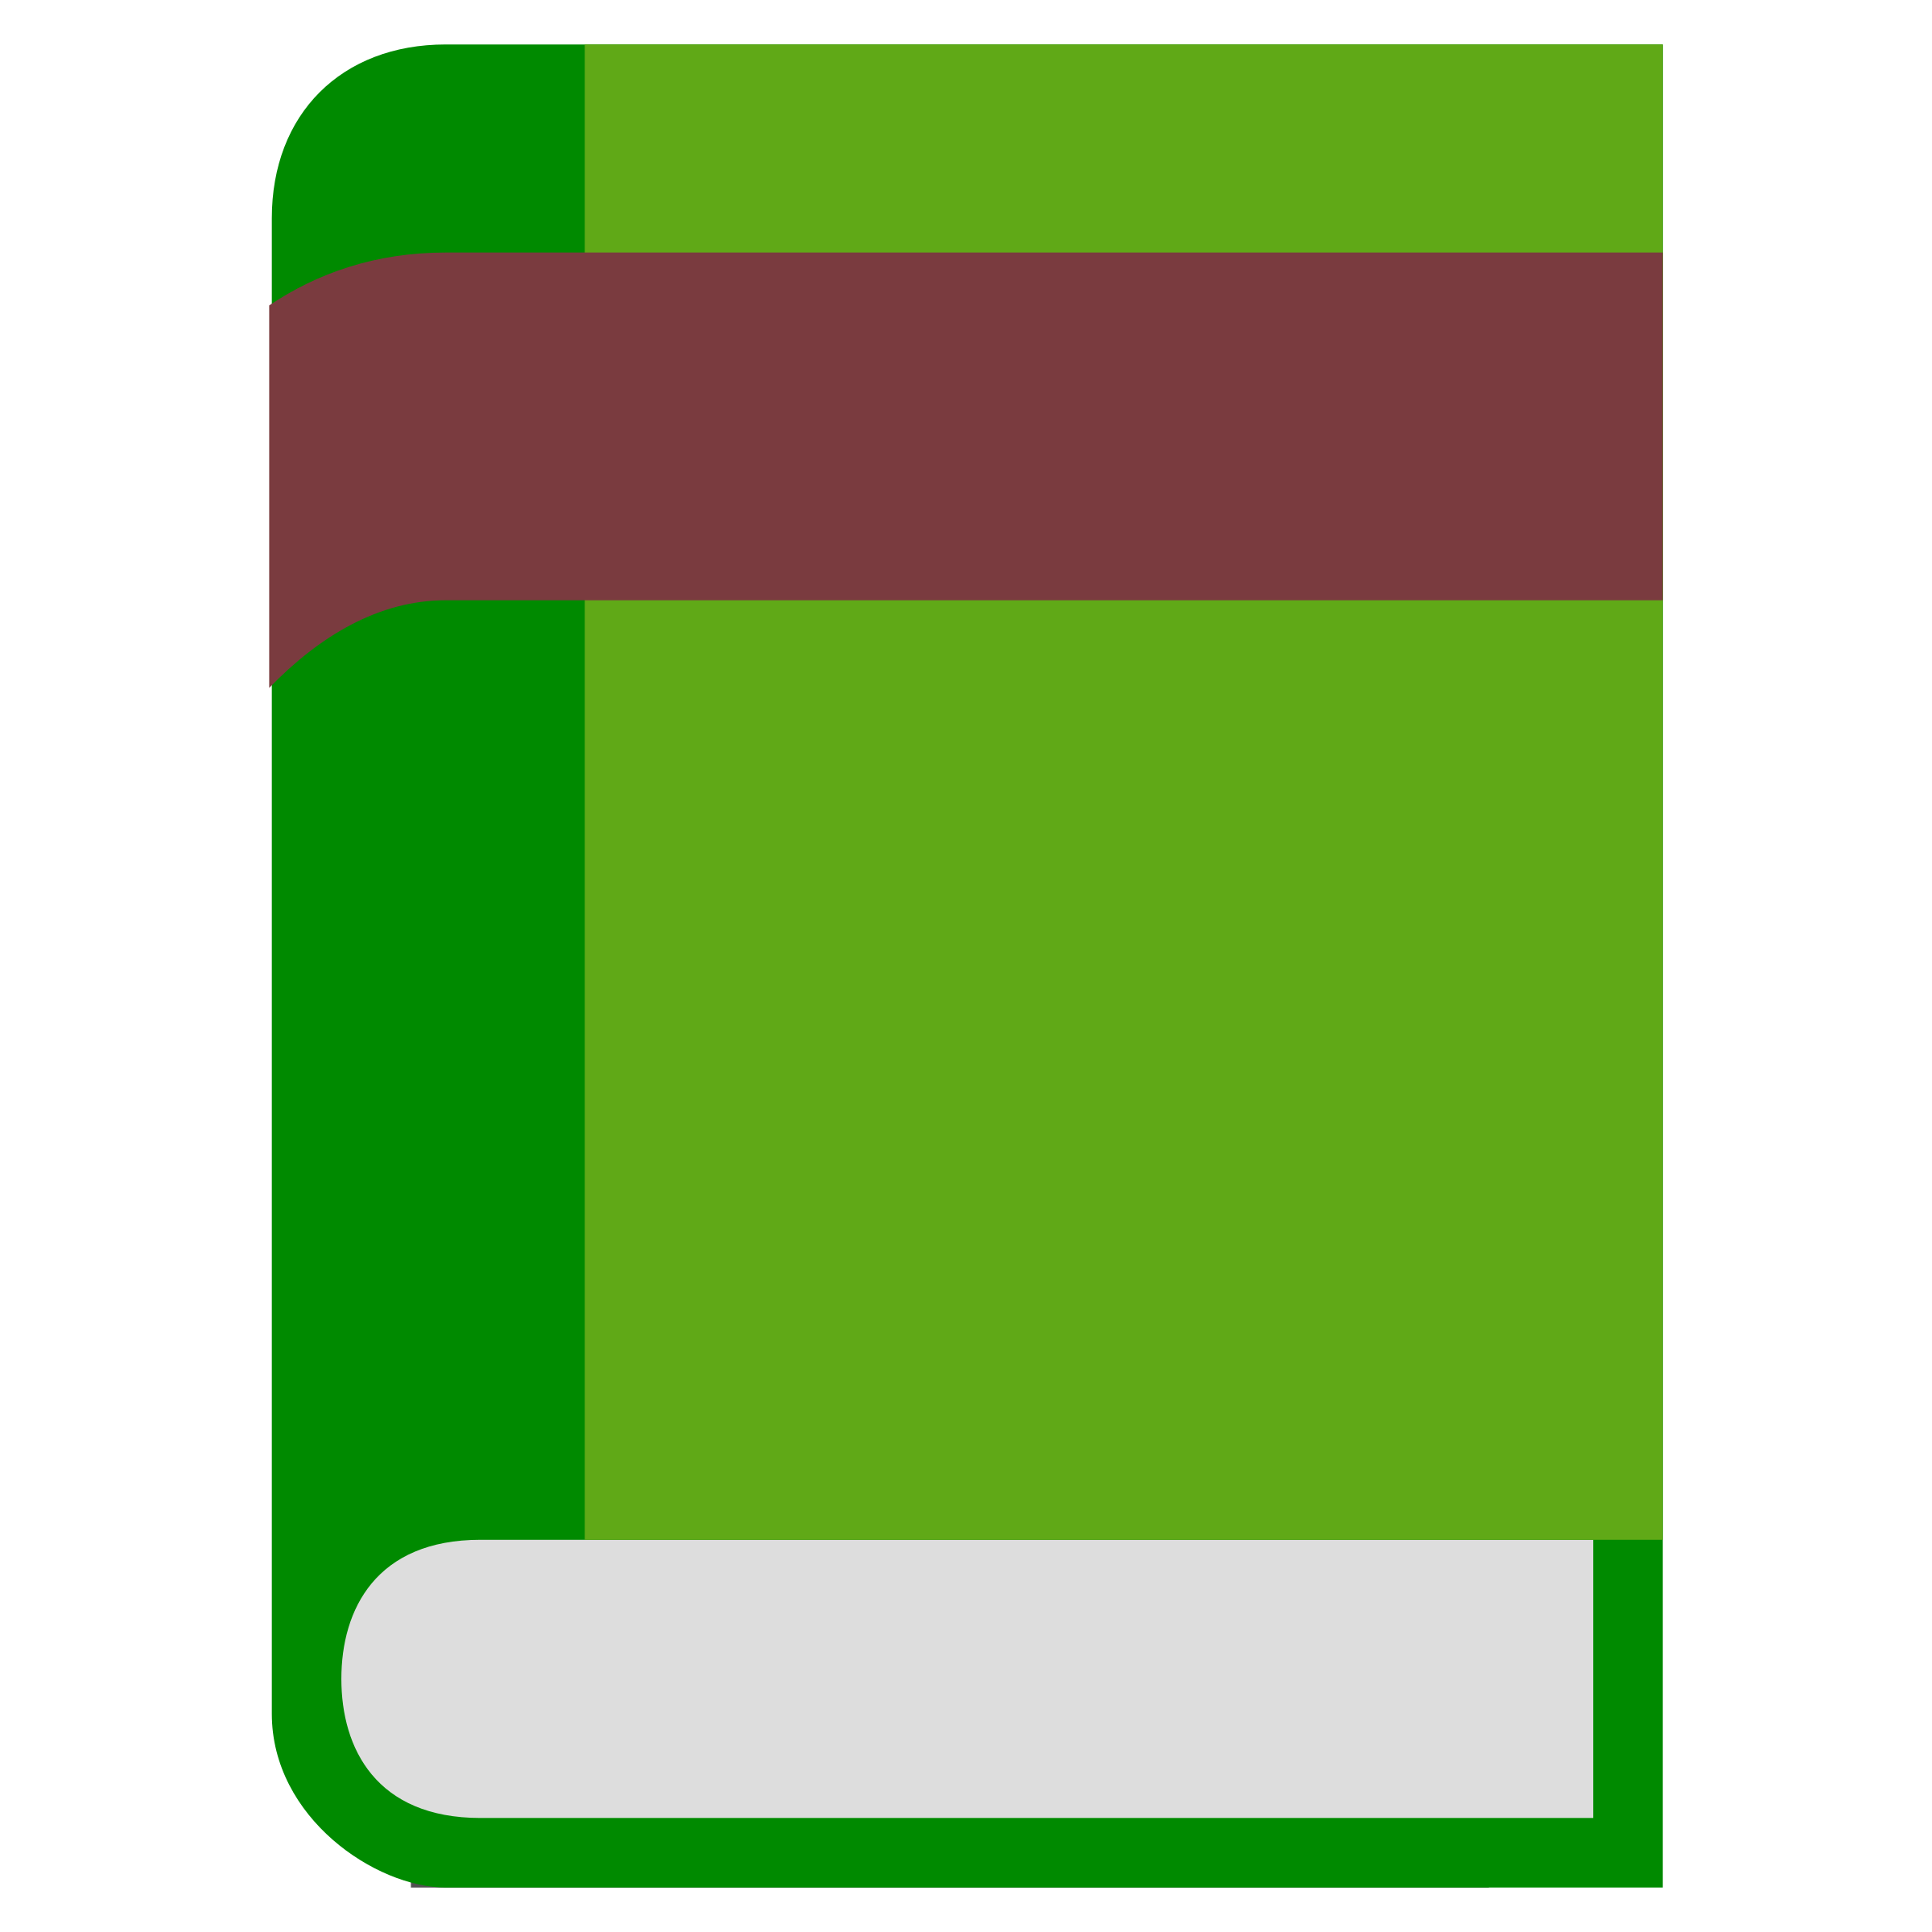 Single book image png. Textbook clipart big